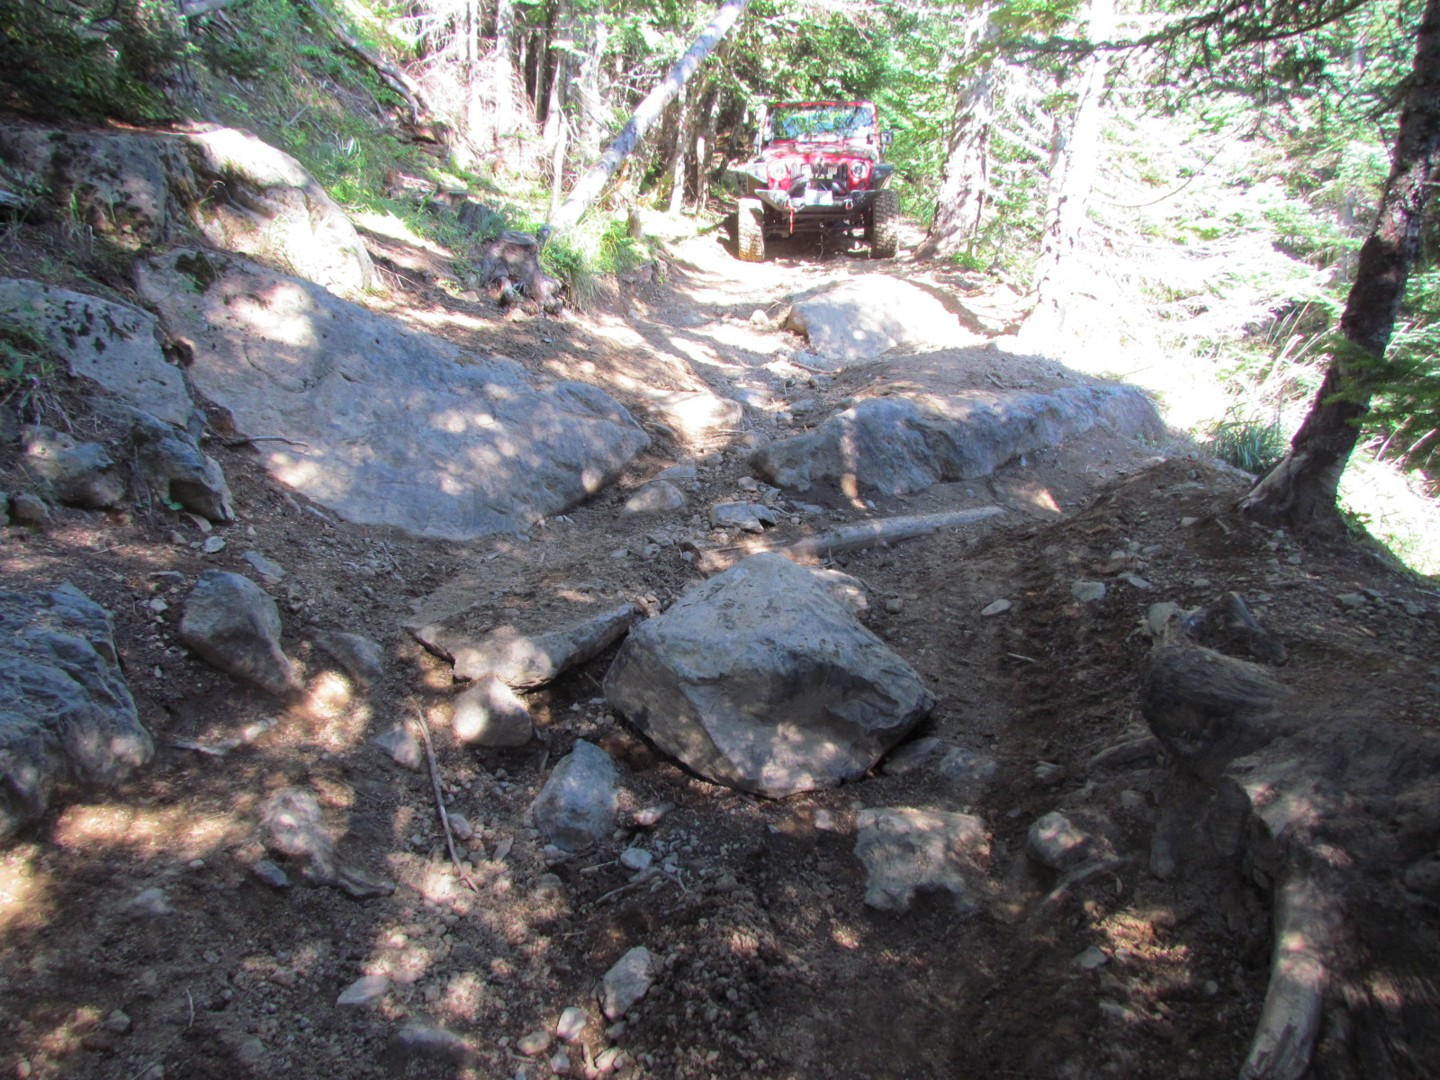 Evans Creek / Trail #519 - Waypoint 7: Dangerous Obstacle